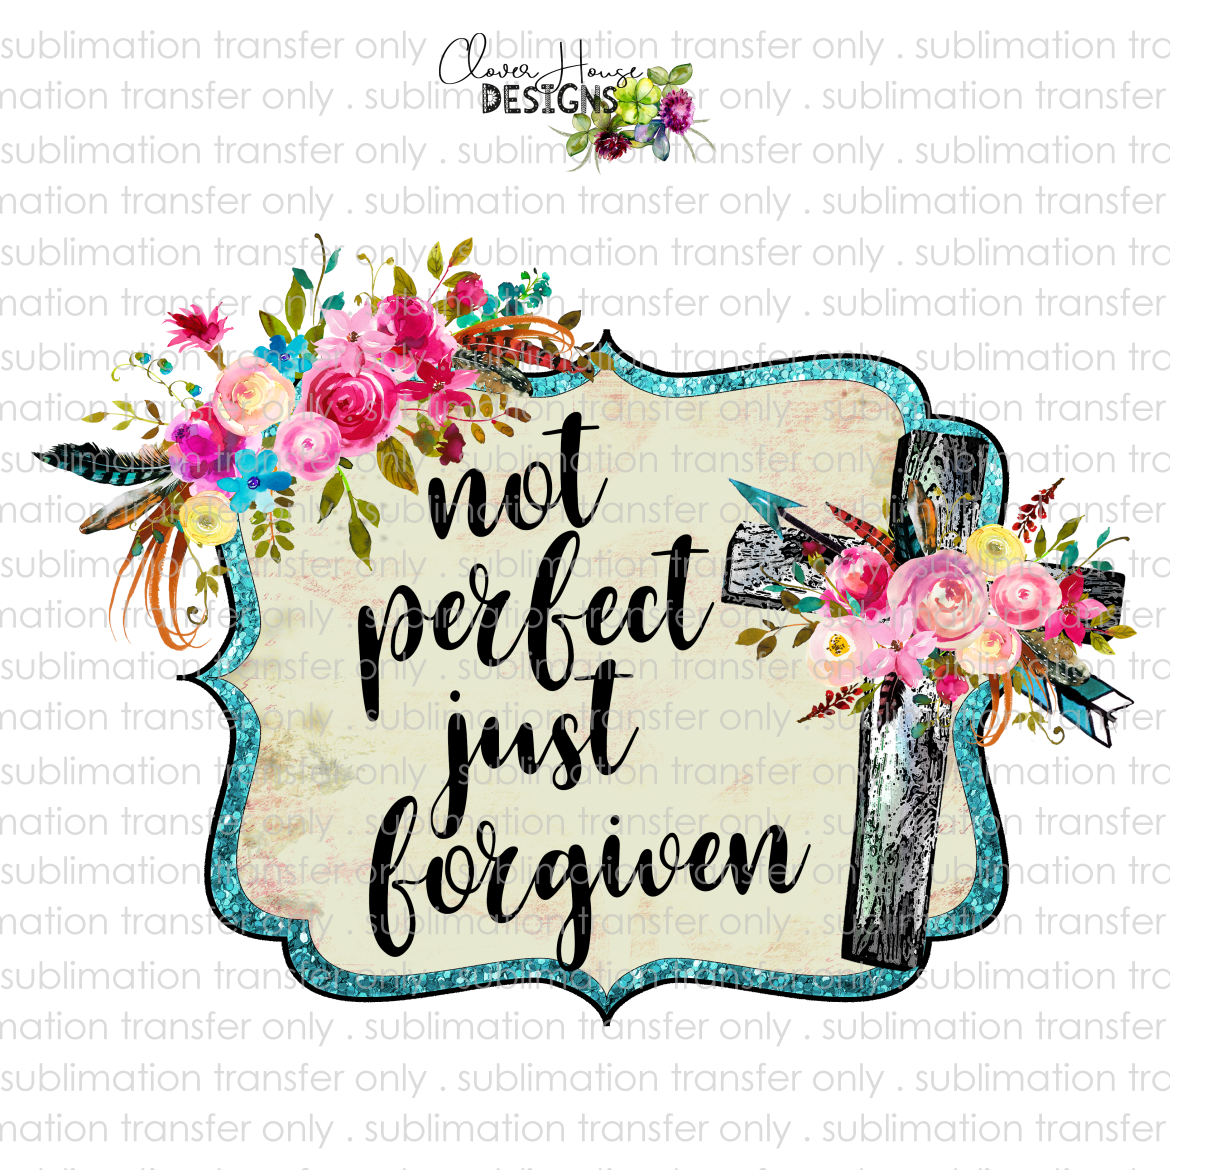 Not Perfect Just Forgiven (Sublimation Transfer)